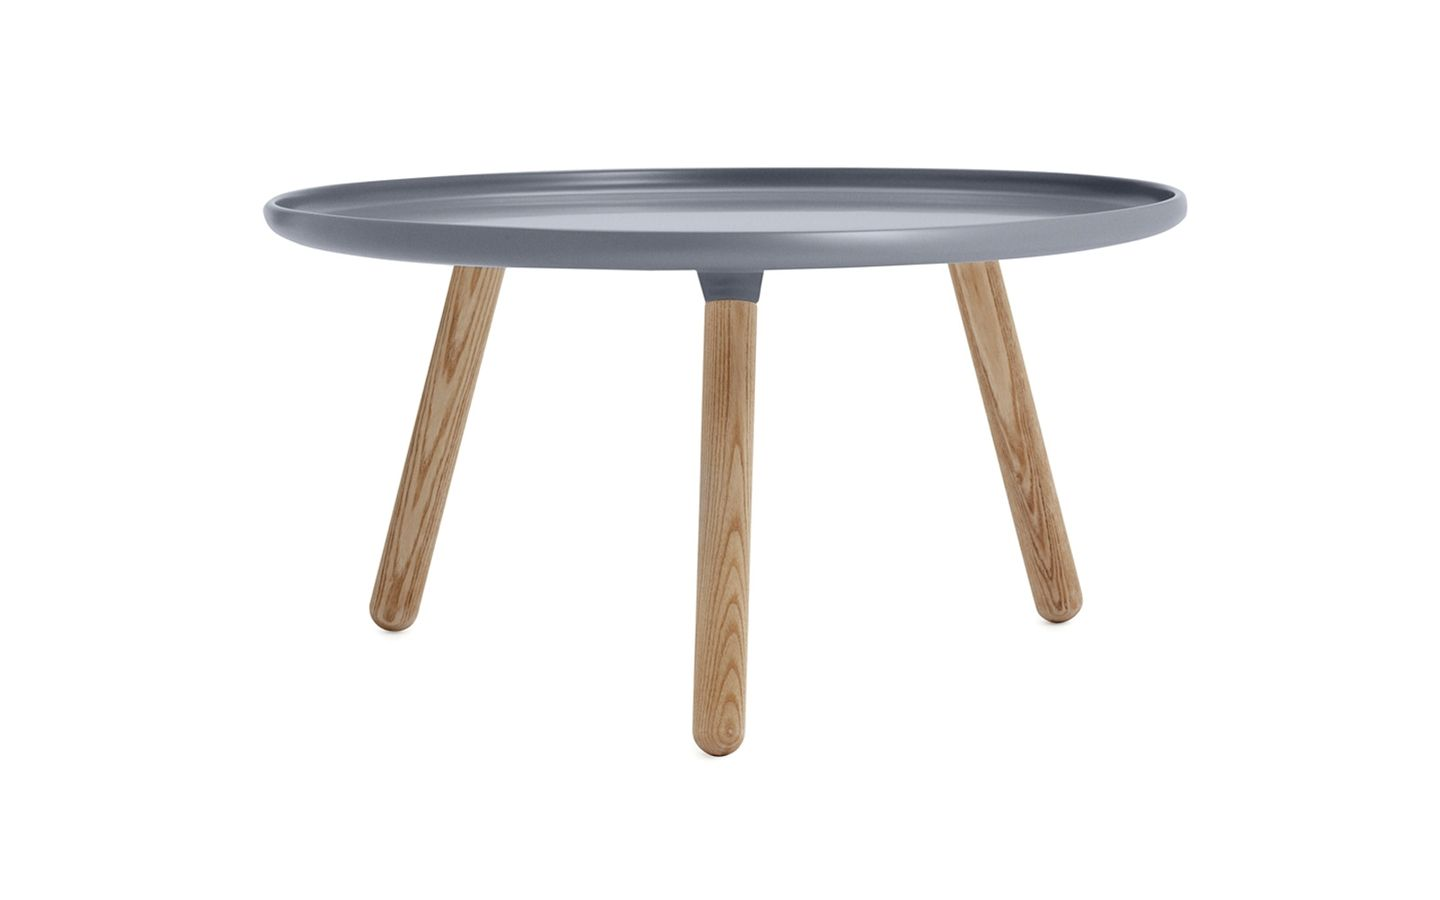 Tablo Table Large Grey Minimalistic Coffee Table In Ash And Plastic Composite Normann Copenhagen Table White Round Coffee Table Coffee Table [ 900 x 1440 Pixel ]